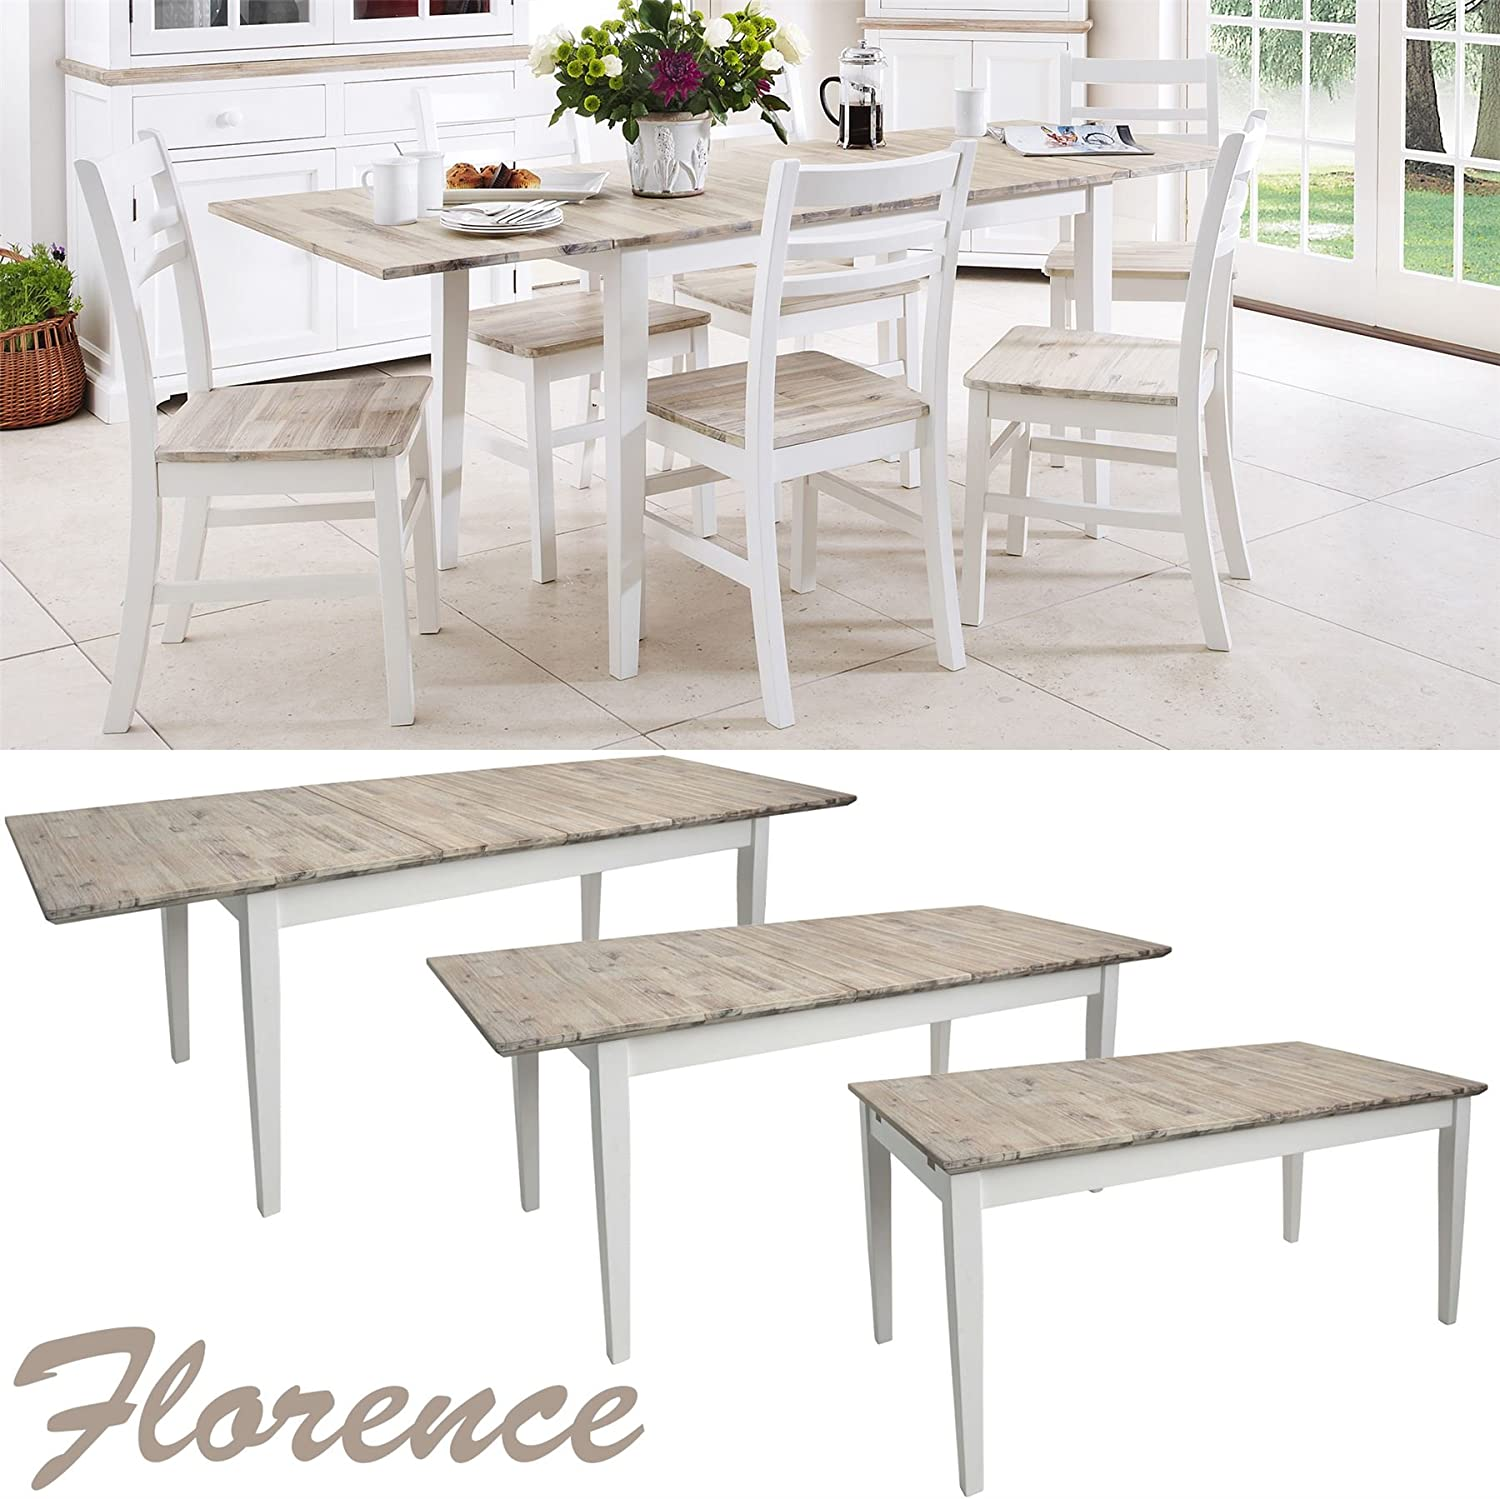 Florence Large Rectangular Dining Table White Extendable Kitchen Table Center Extension Extends To 3 Sizes 140 170 200 Amazon Co Uk Kitchen Home